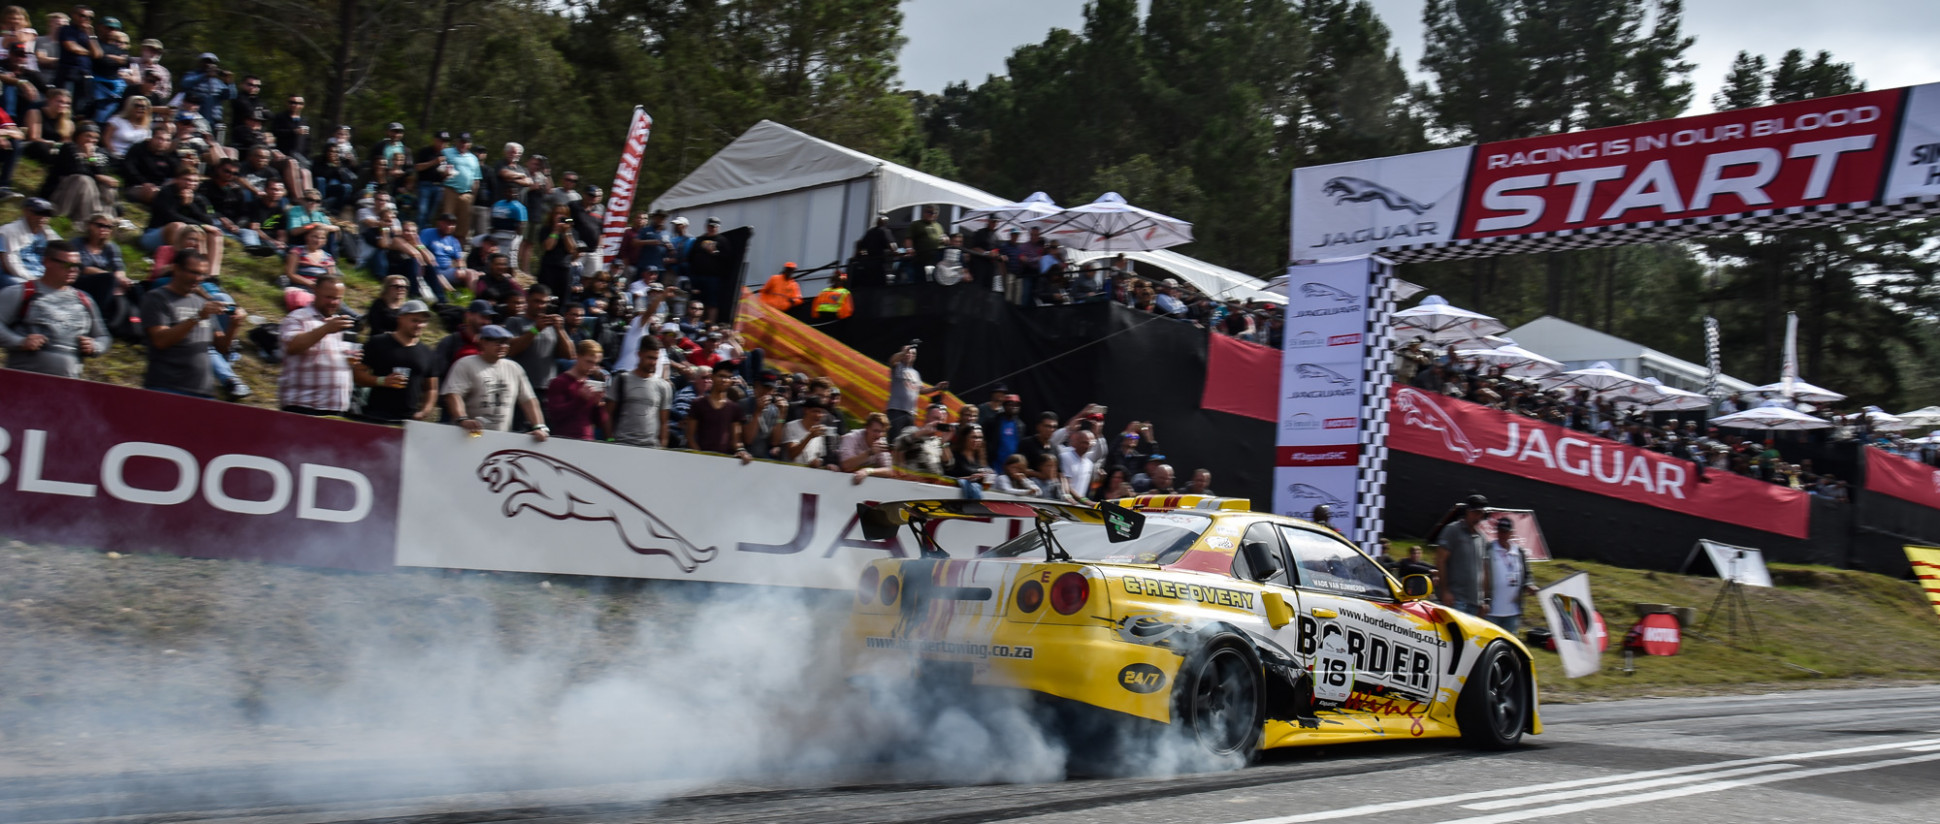 Green light for 11 Jaguar Simola Hillclimb ticket sales – Simola ..